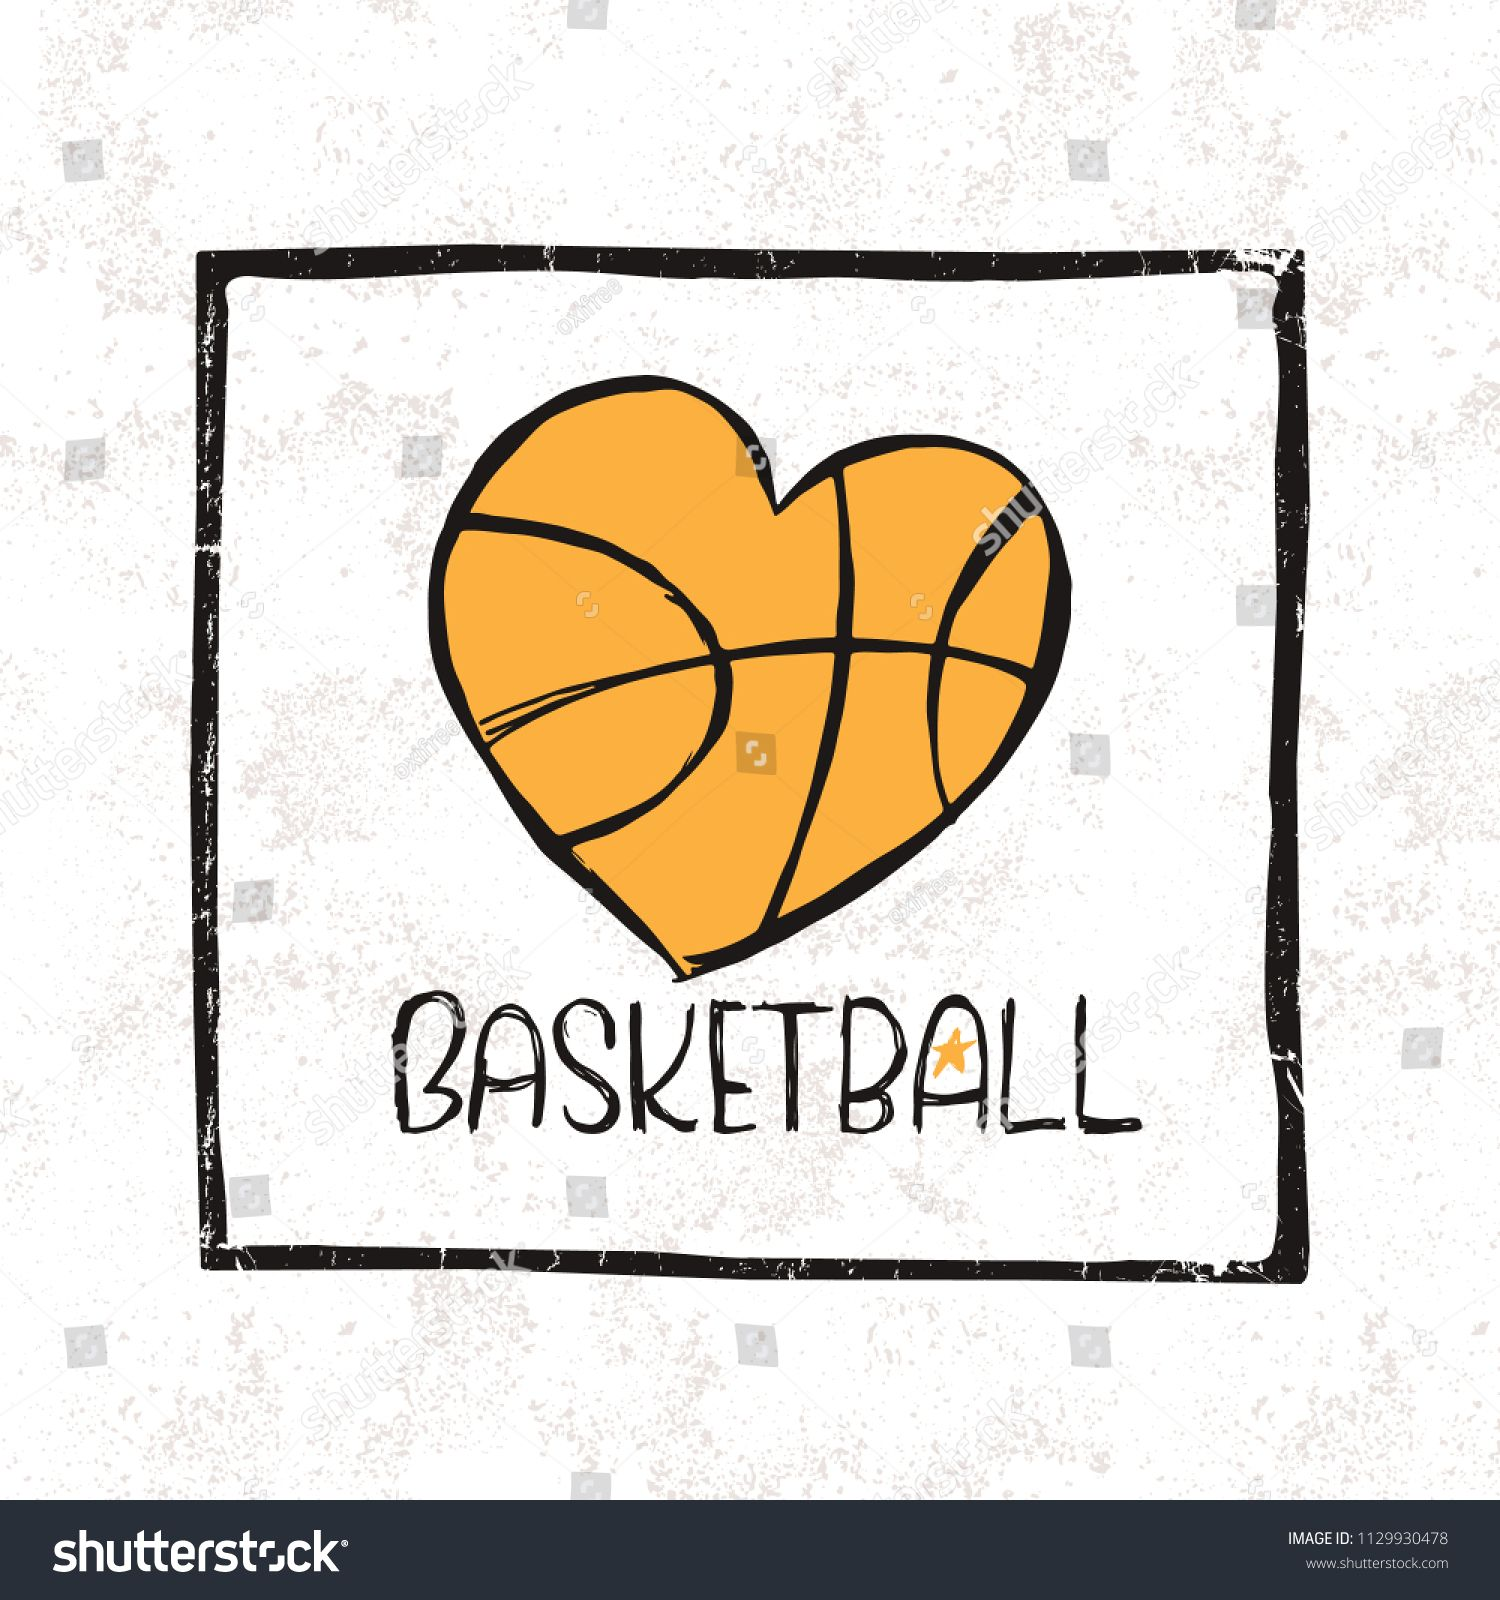 Vector Illustration Of Basketball Ball In The Shape Of A Heart Print Design For A T Shirt Love Of Sport Vector Illustration Heart Shirt Design Illustration